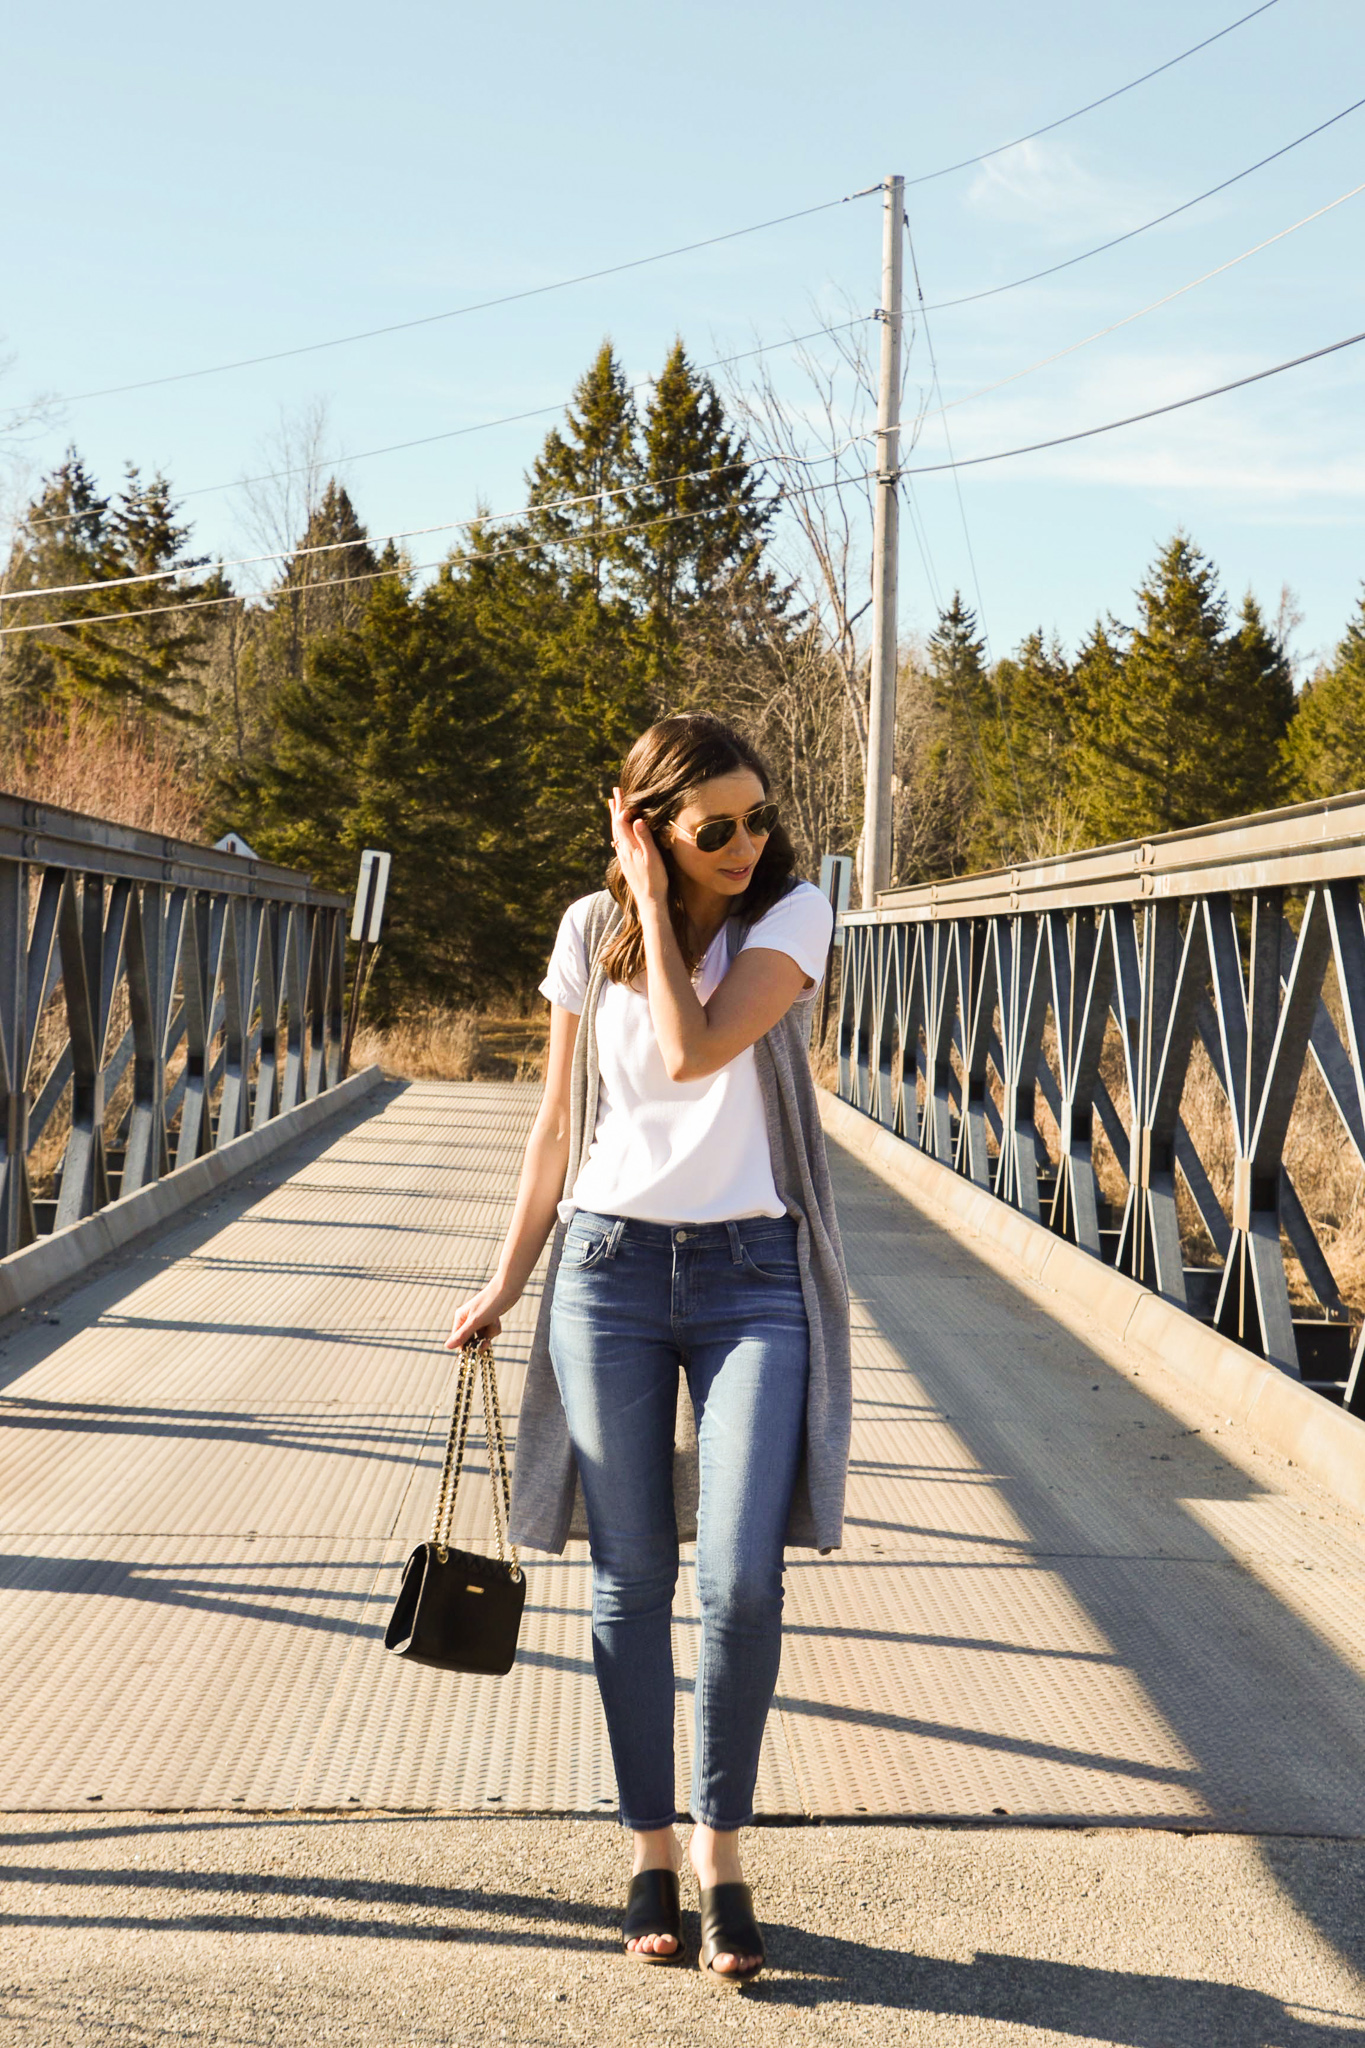 Walking on a bridge wearing medium wash denim, black mules, white shirt and a grey duster